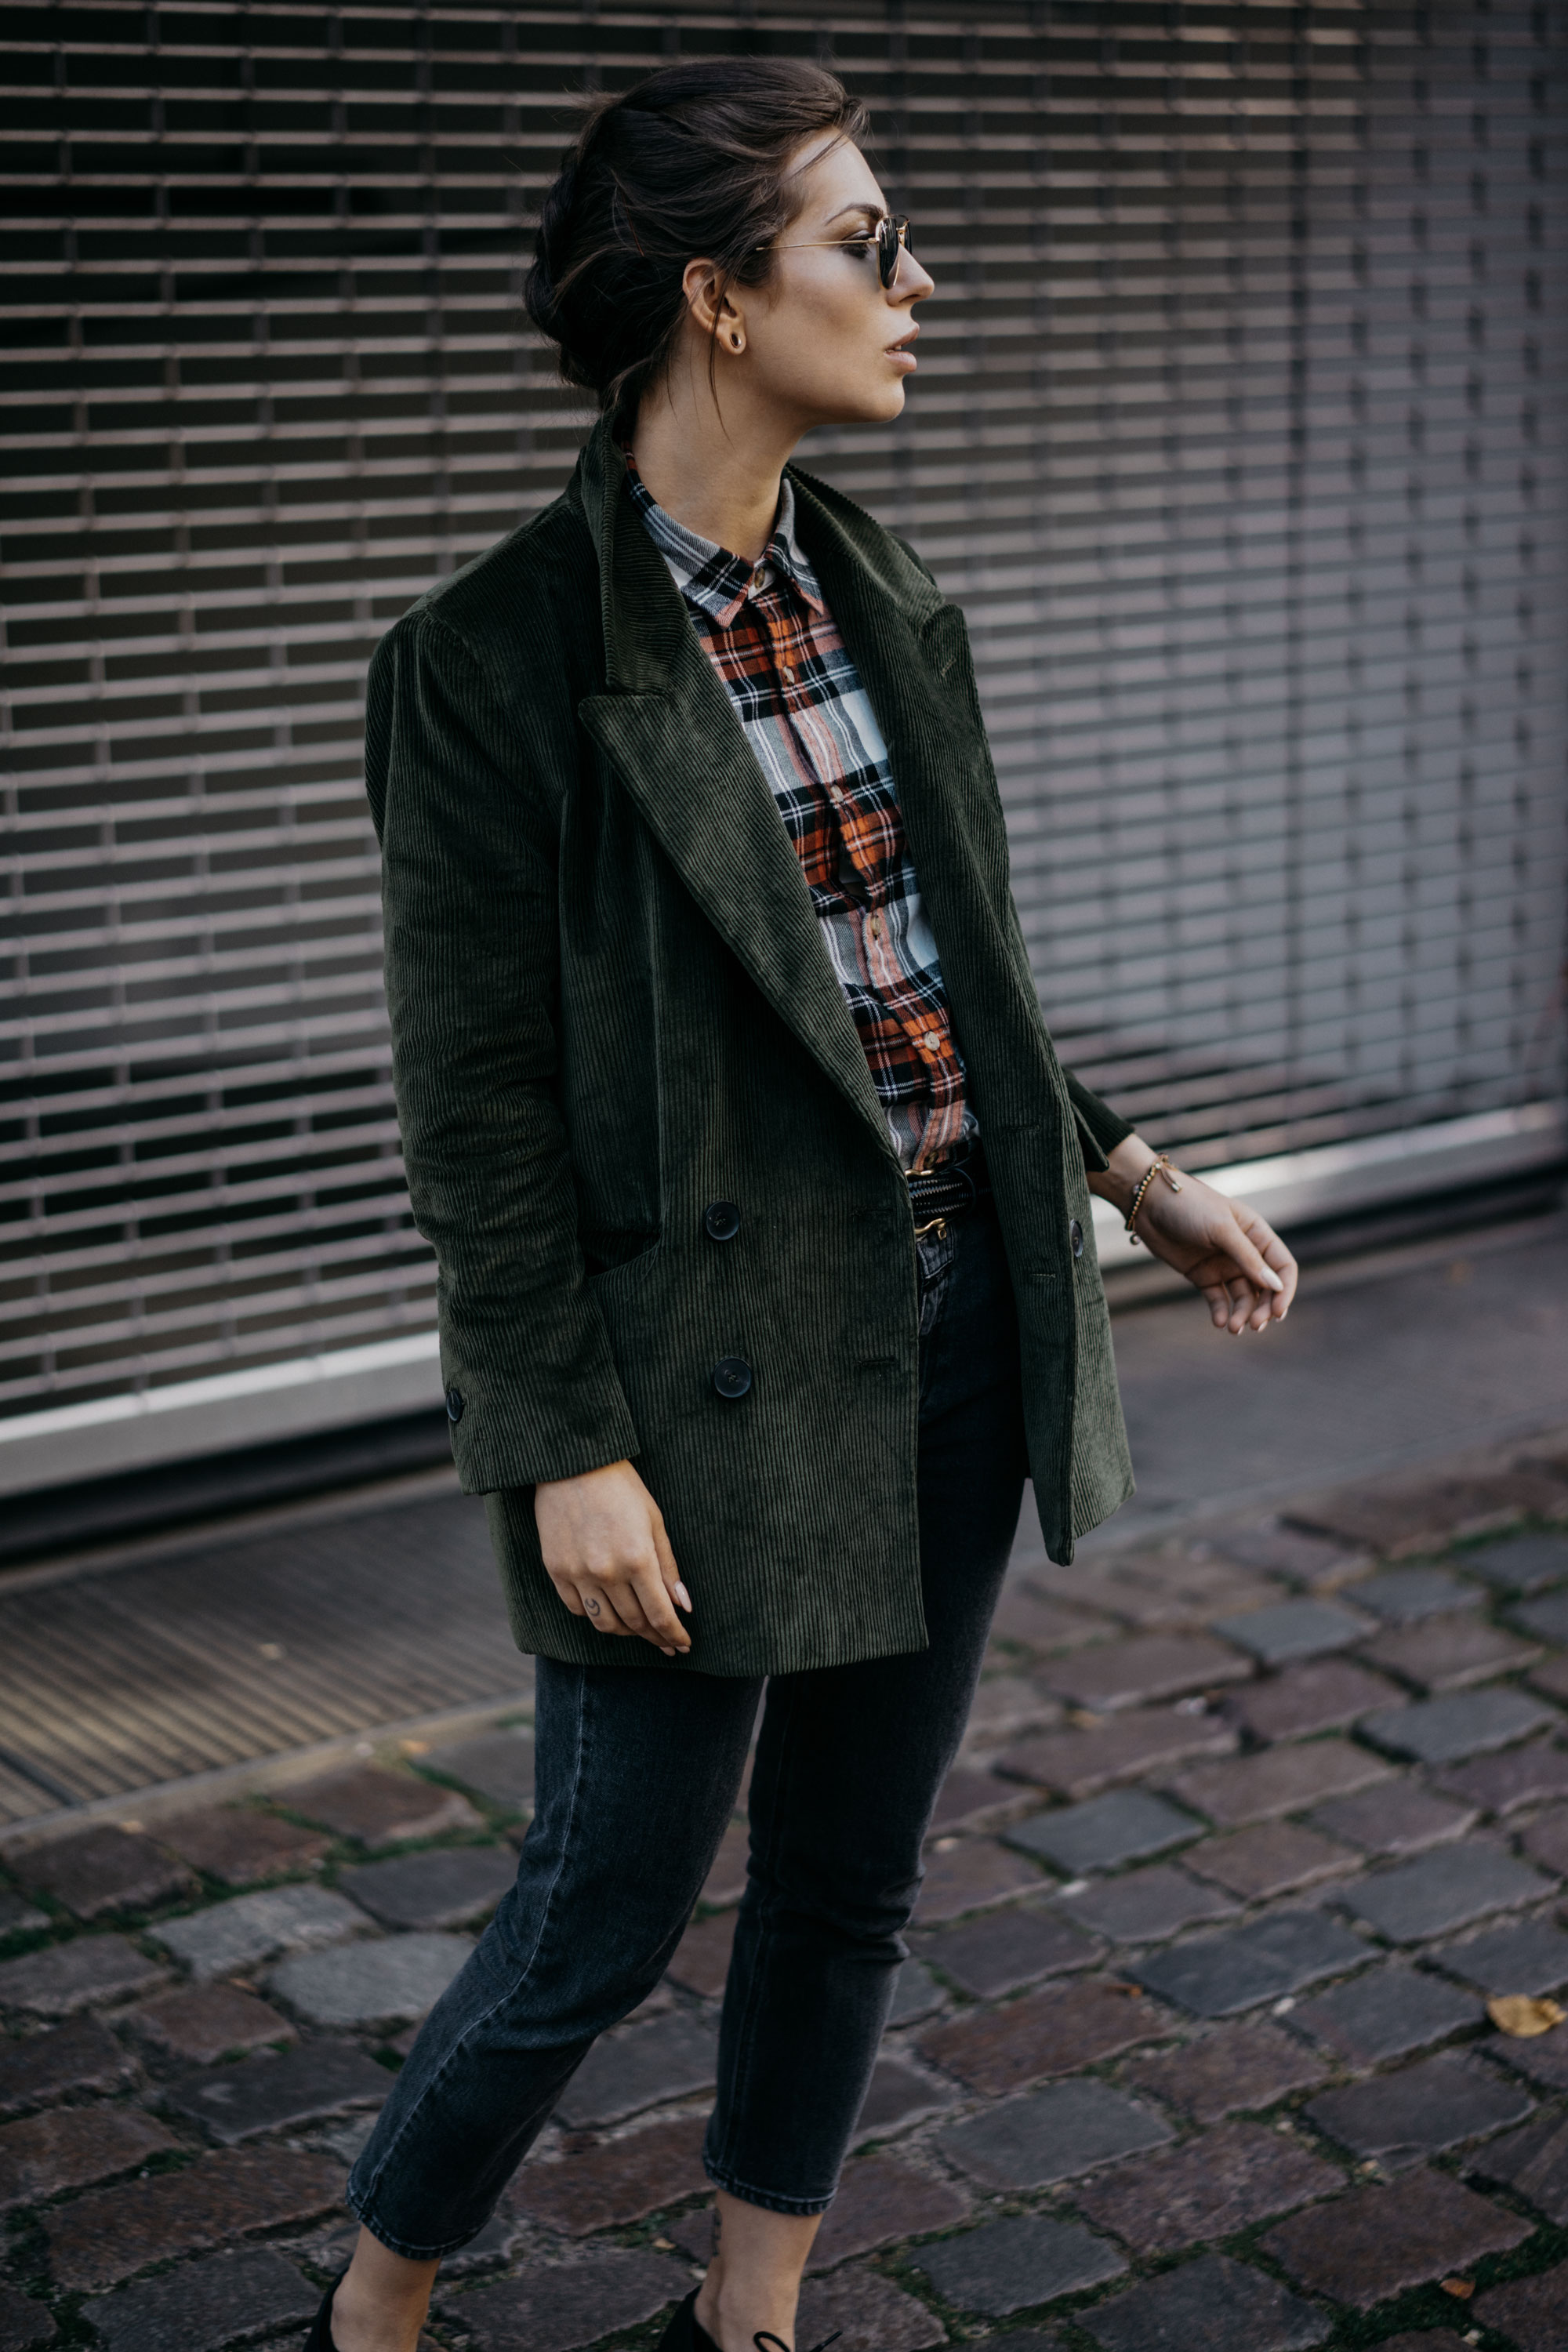 Autumn outfit | dark green cord blazer, checked shirt, grey jeans from Closed, flat shoes from Dr. Martens | style: casual, relaxed, sunday, winter, comfy, cosy, office